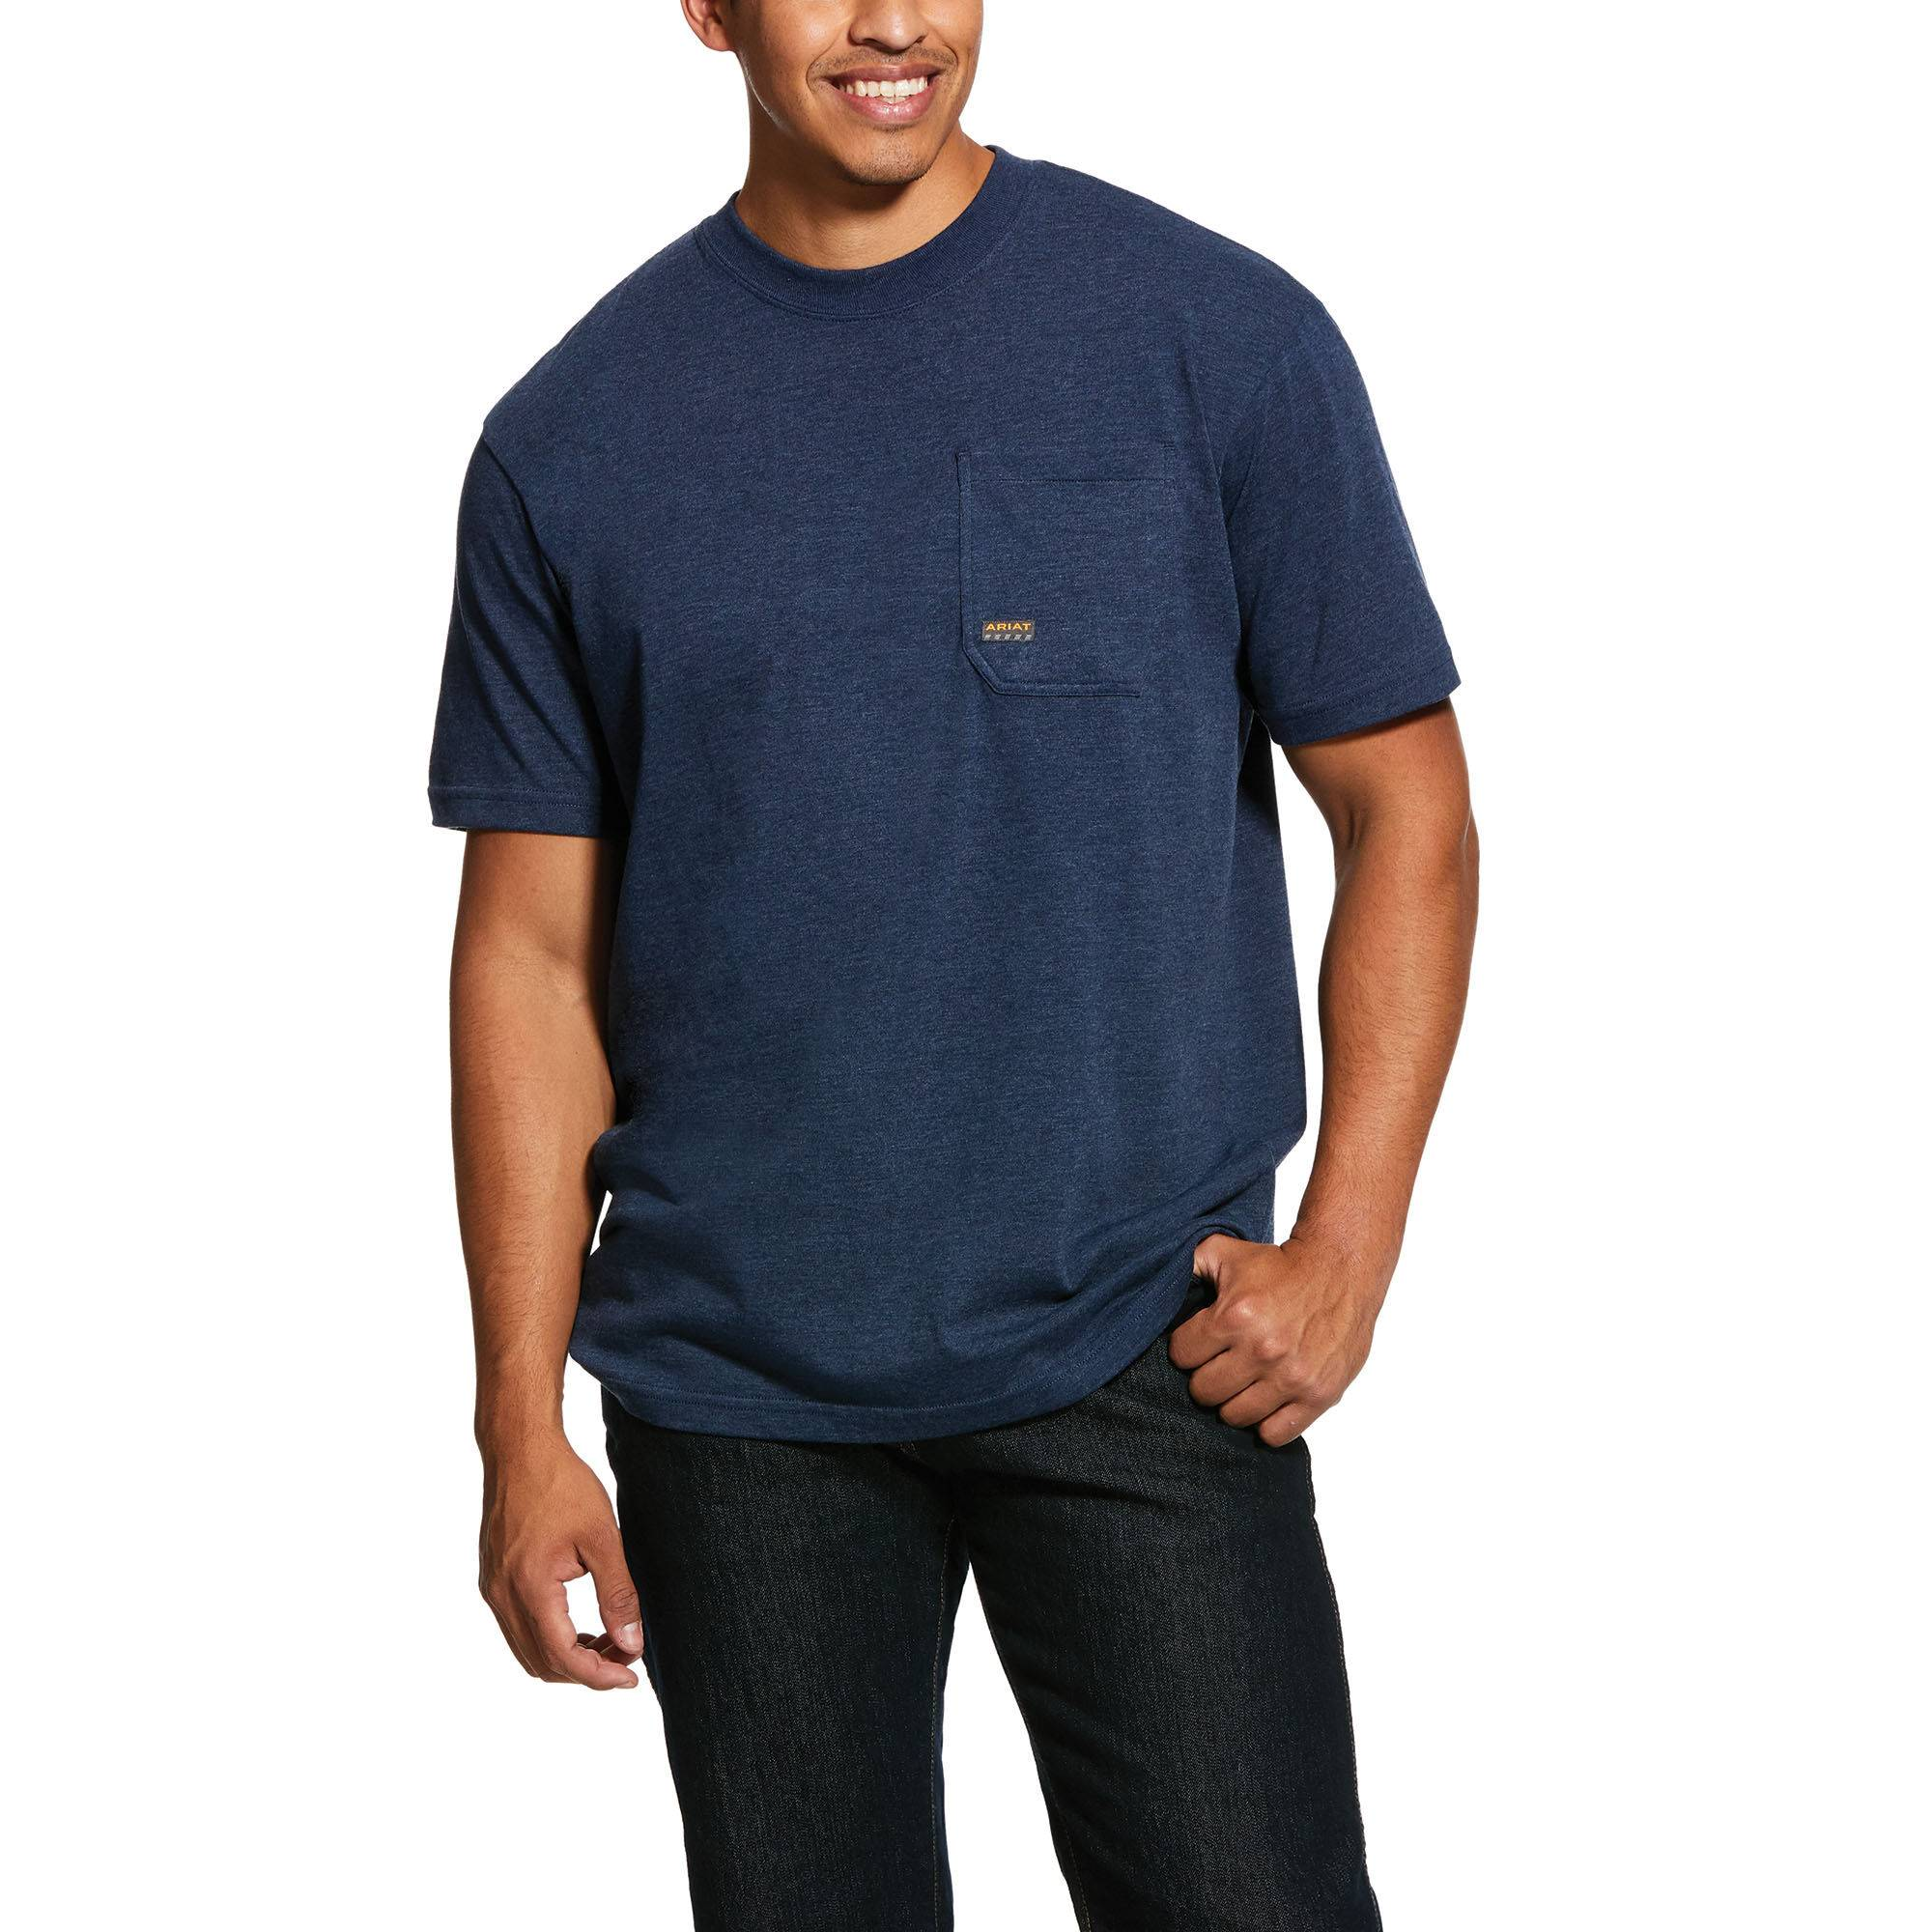 Ariat Men's Short Sleeve Rebar Cotton Strong American Grit Graphic T-Shirt in Navy Heather, Large by Ariat